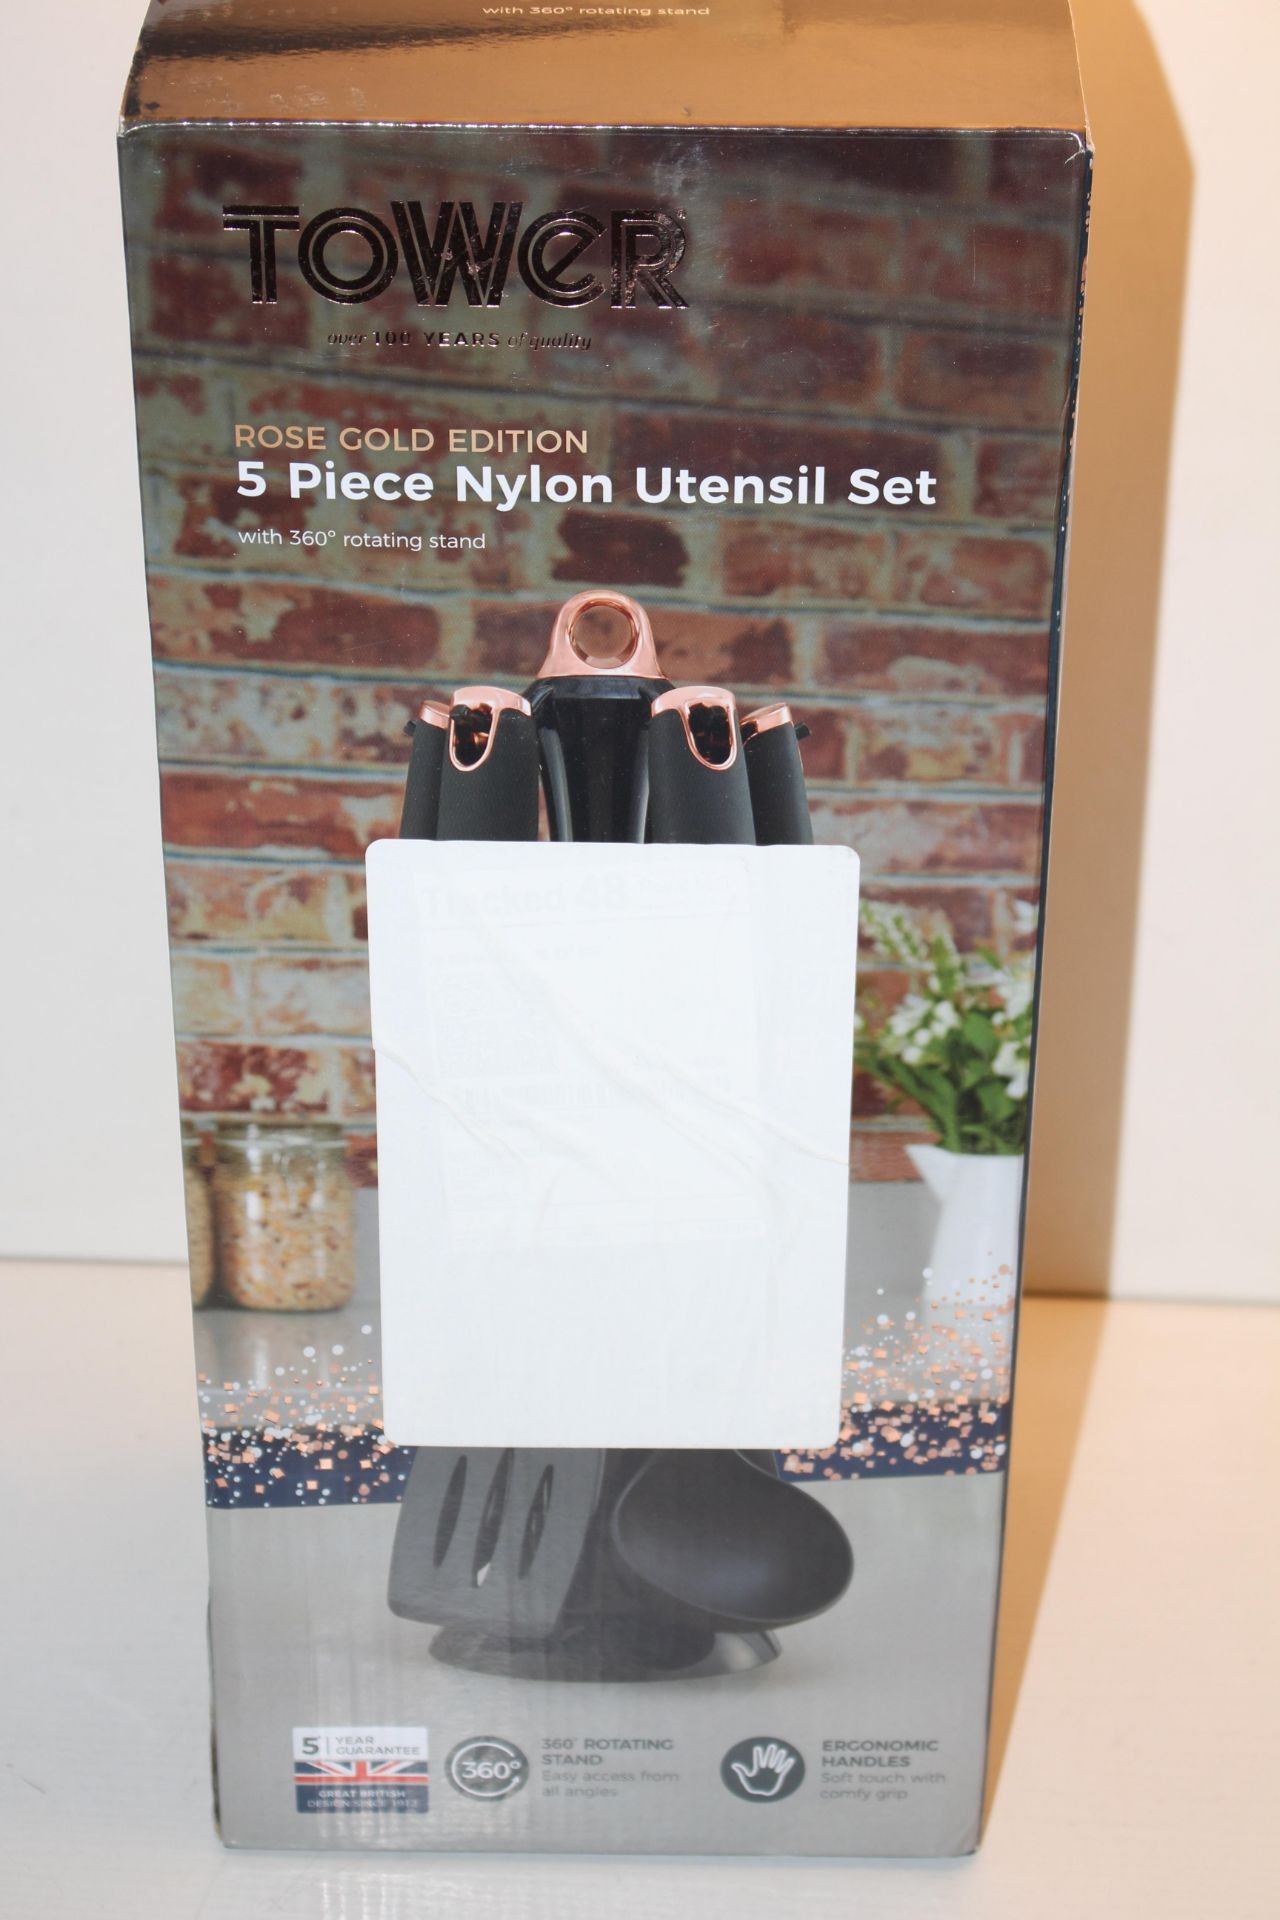 BOXED TOWER ROSE GOLD EDITION 5 PIECE NYLON UTENSIL SET WITH 360' ROTATING STAND Condition